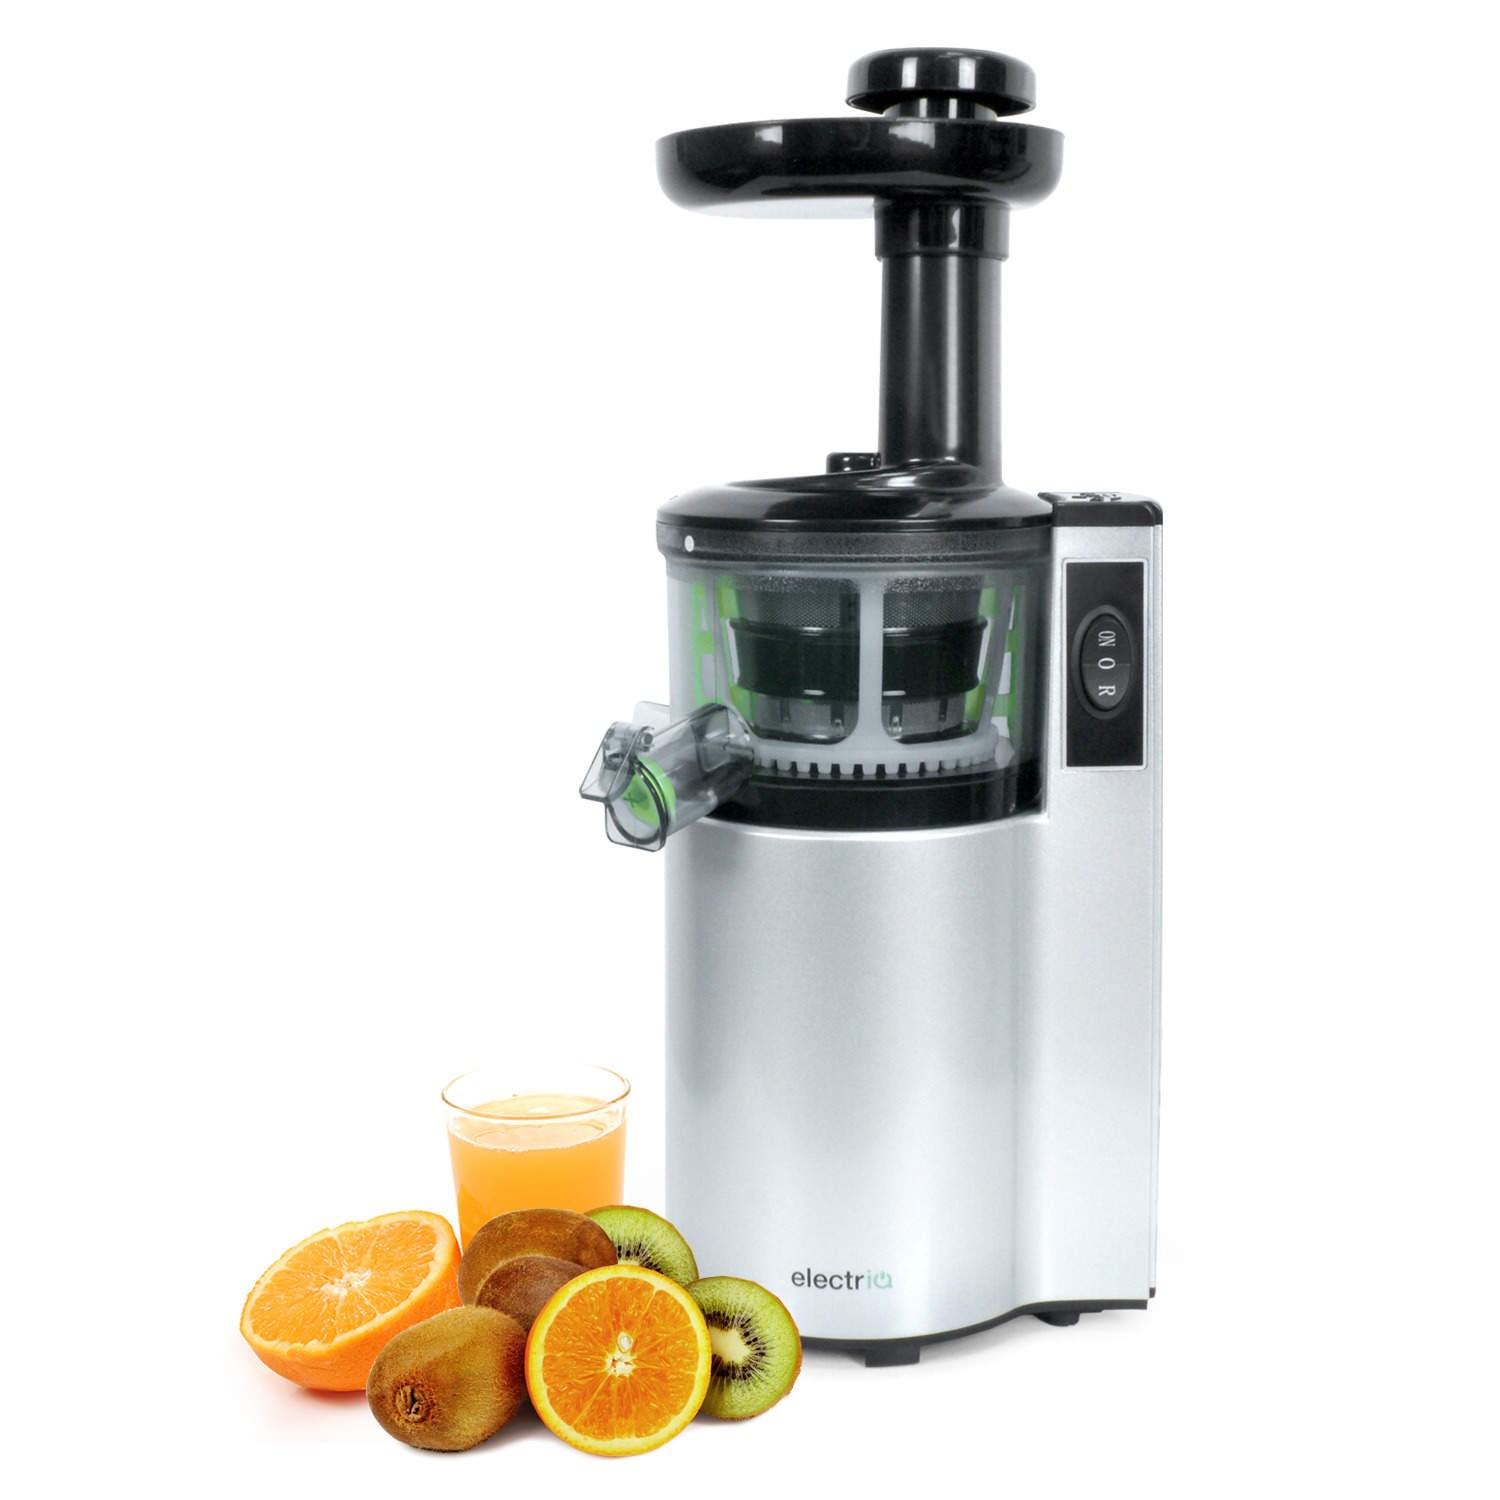 Masticating Juicer Slow Juicer : ElectriQ vertical Slow Masticating Juicer Fruit vegetable Juice Extractor eBay